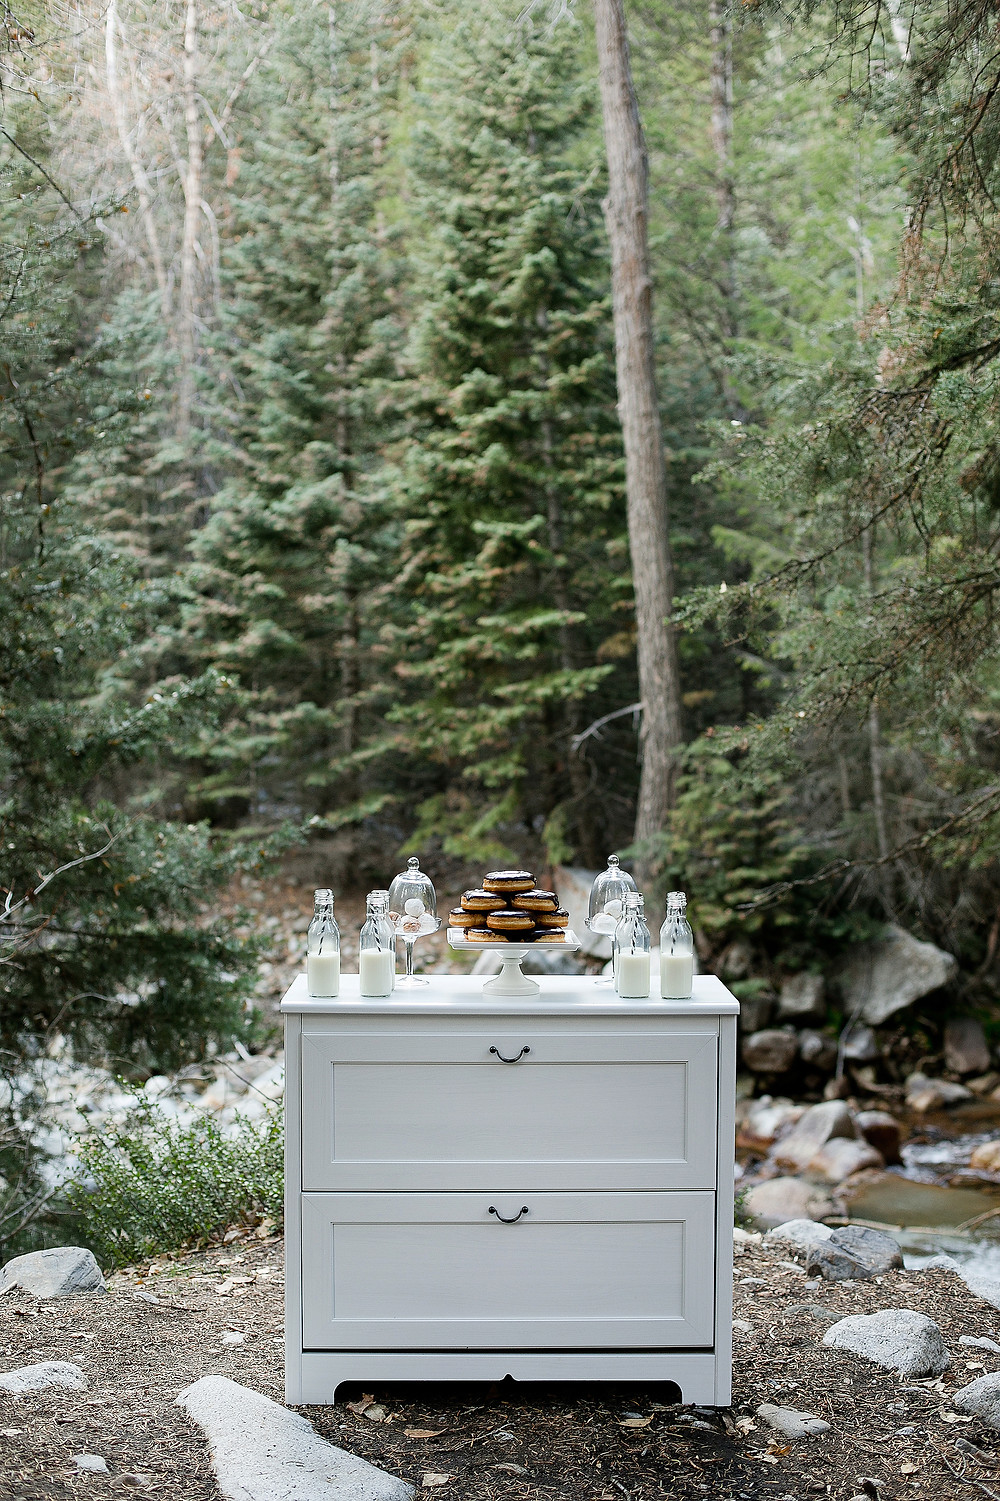 dresser with milk and donuts in the middle of the forest